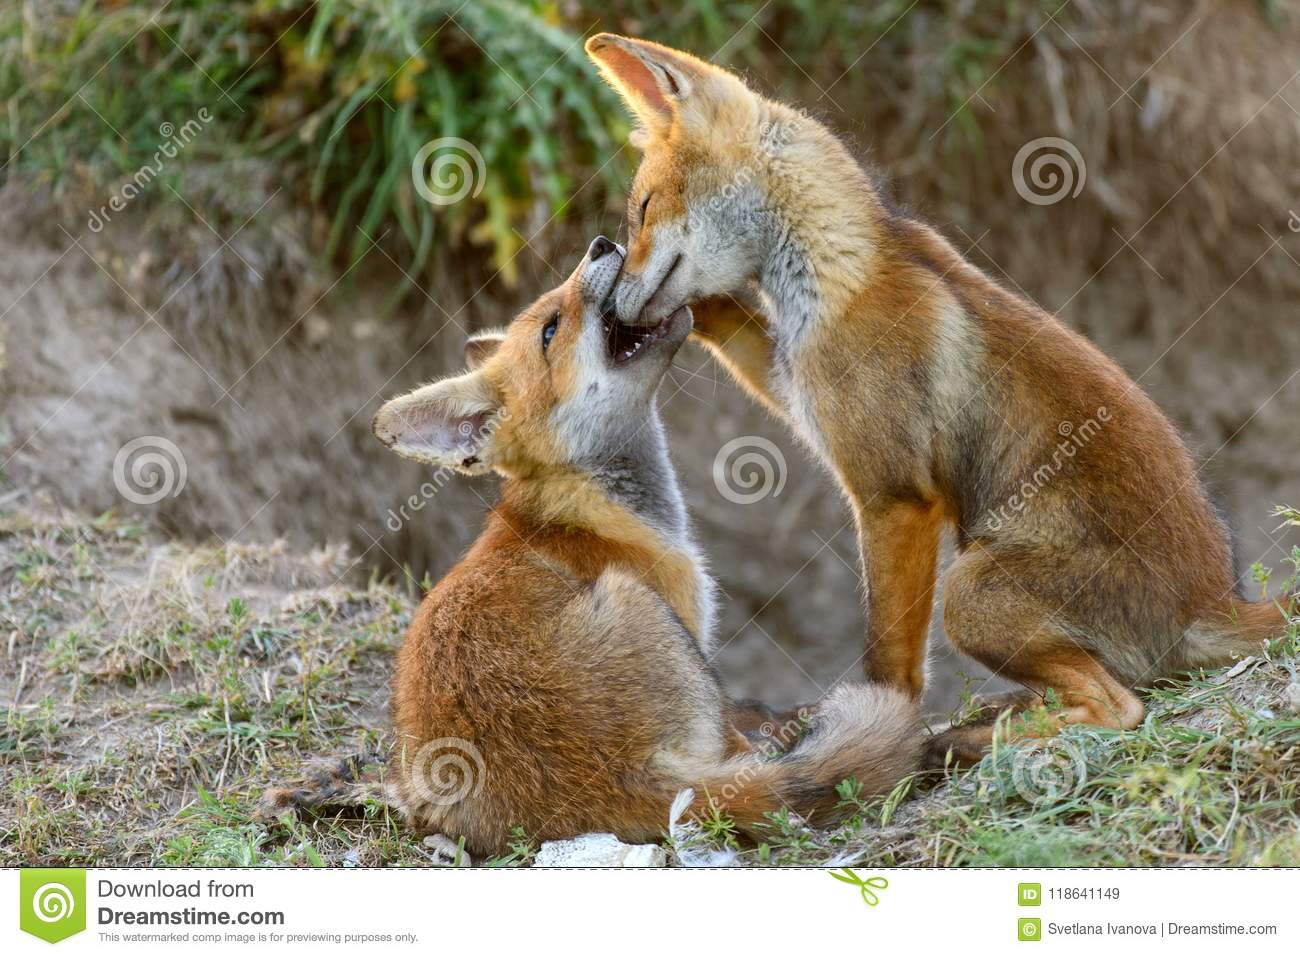 Two Little Red Fox playing near their burrows